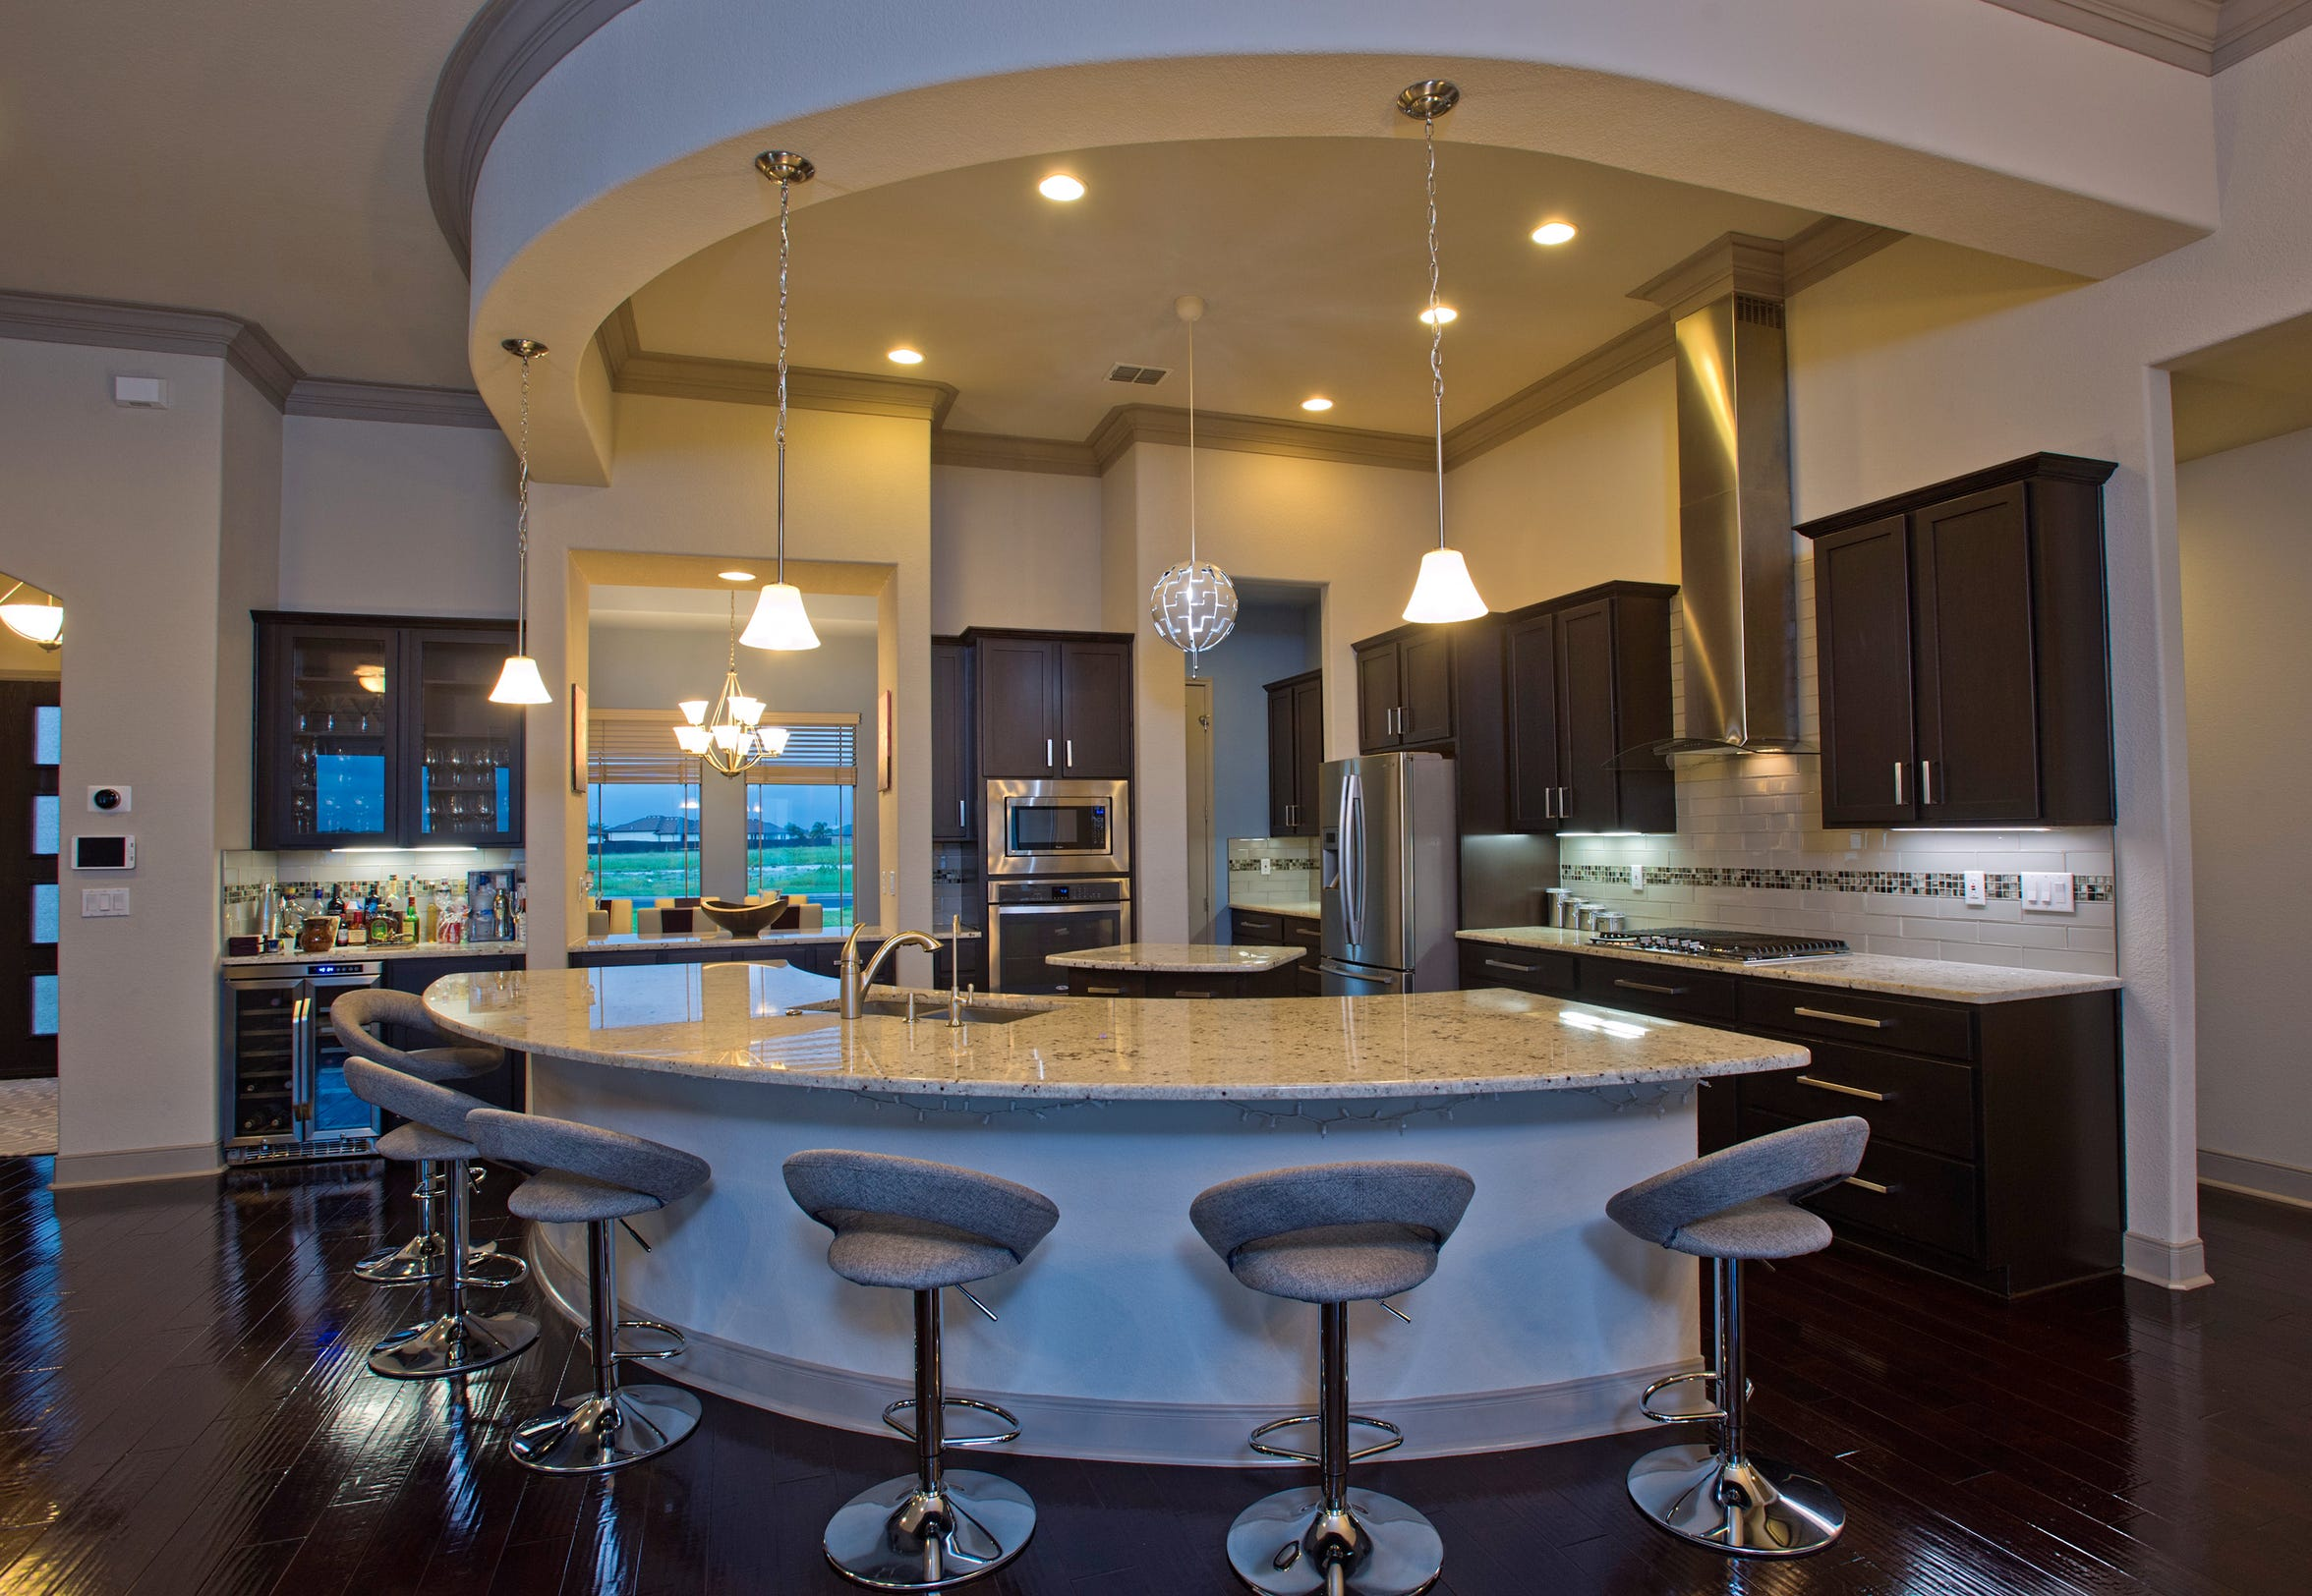 This gourmet kitchen and eating area must be experienced.  The area features expansive cabinetry, granite counters, glass backsplash and large curved center island with adjoining pantry and butler's pantry; all open to the living space.